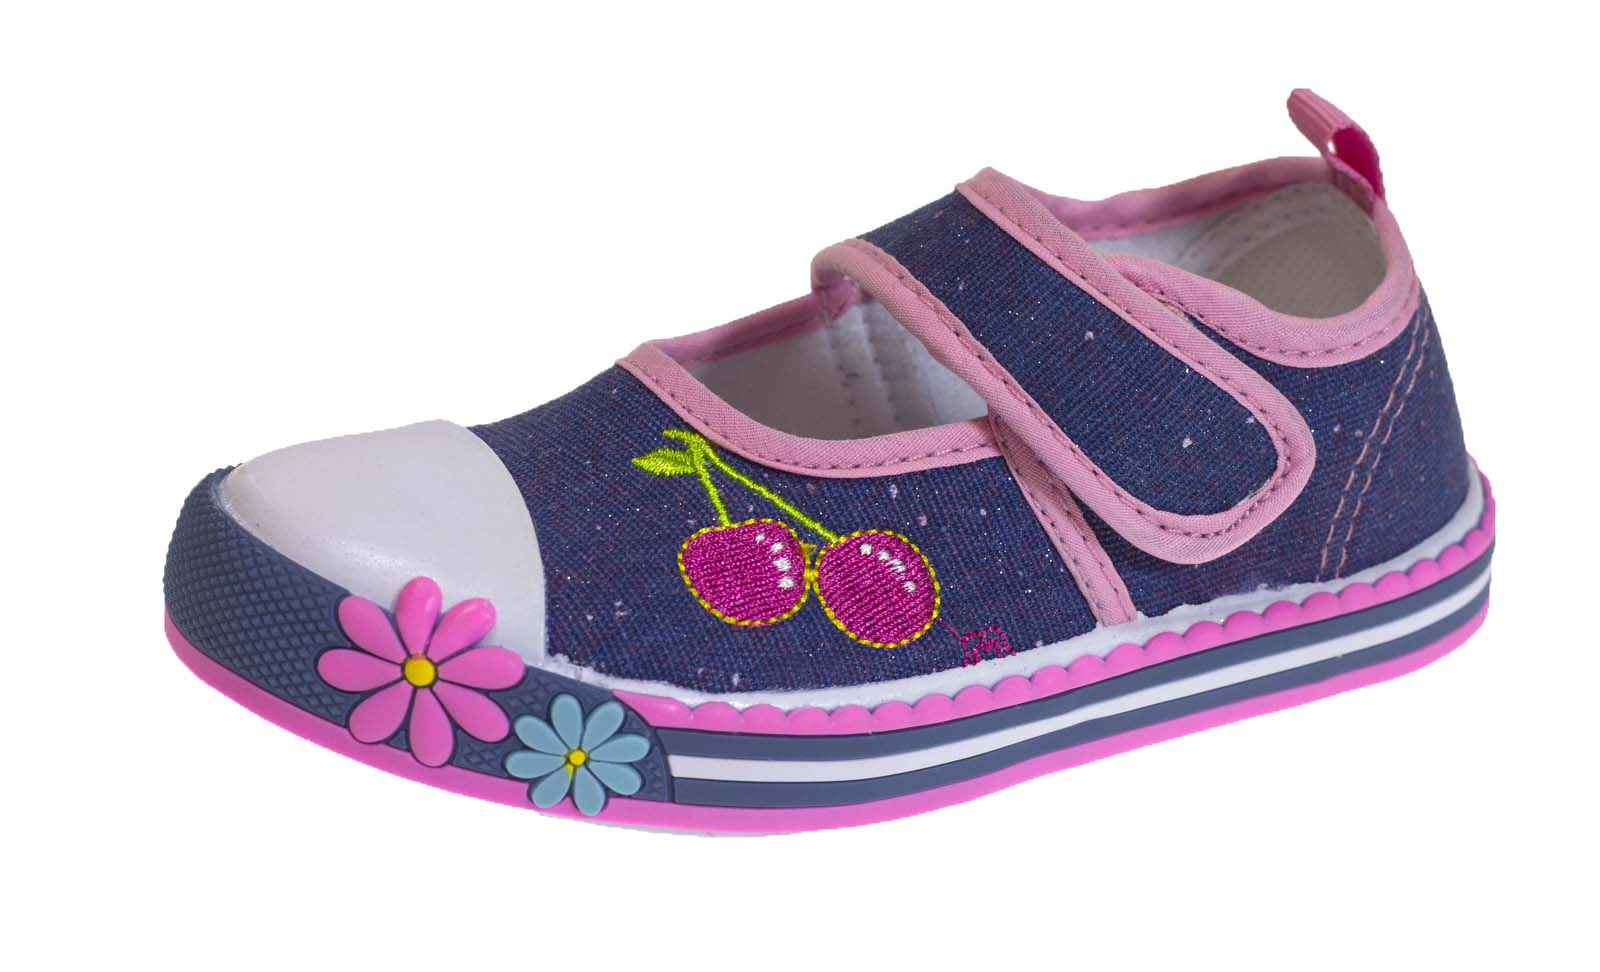 Girls Glitter Canvas Shoes Mary Jane Pumps Sequin Summer Trainers Kids Size